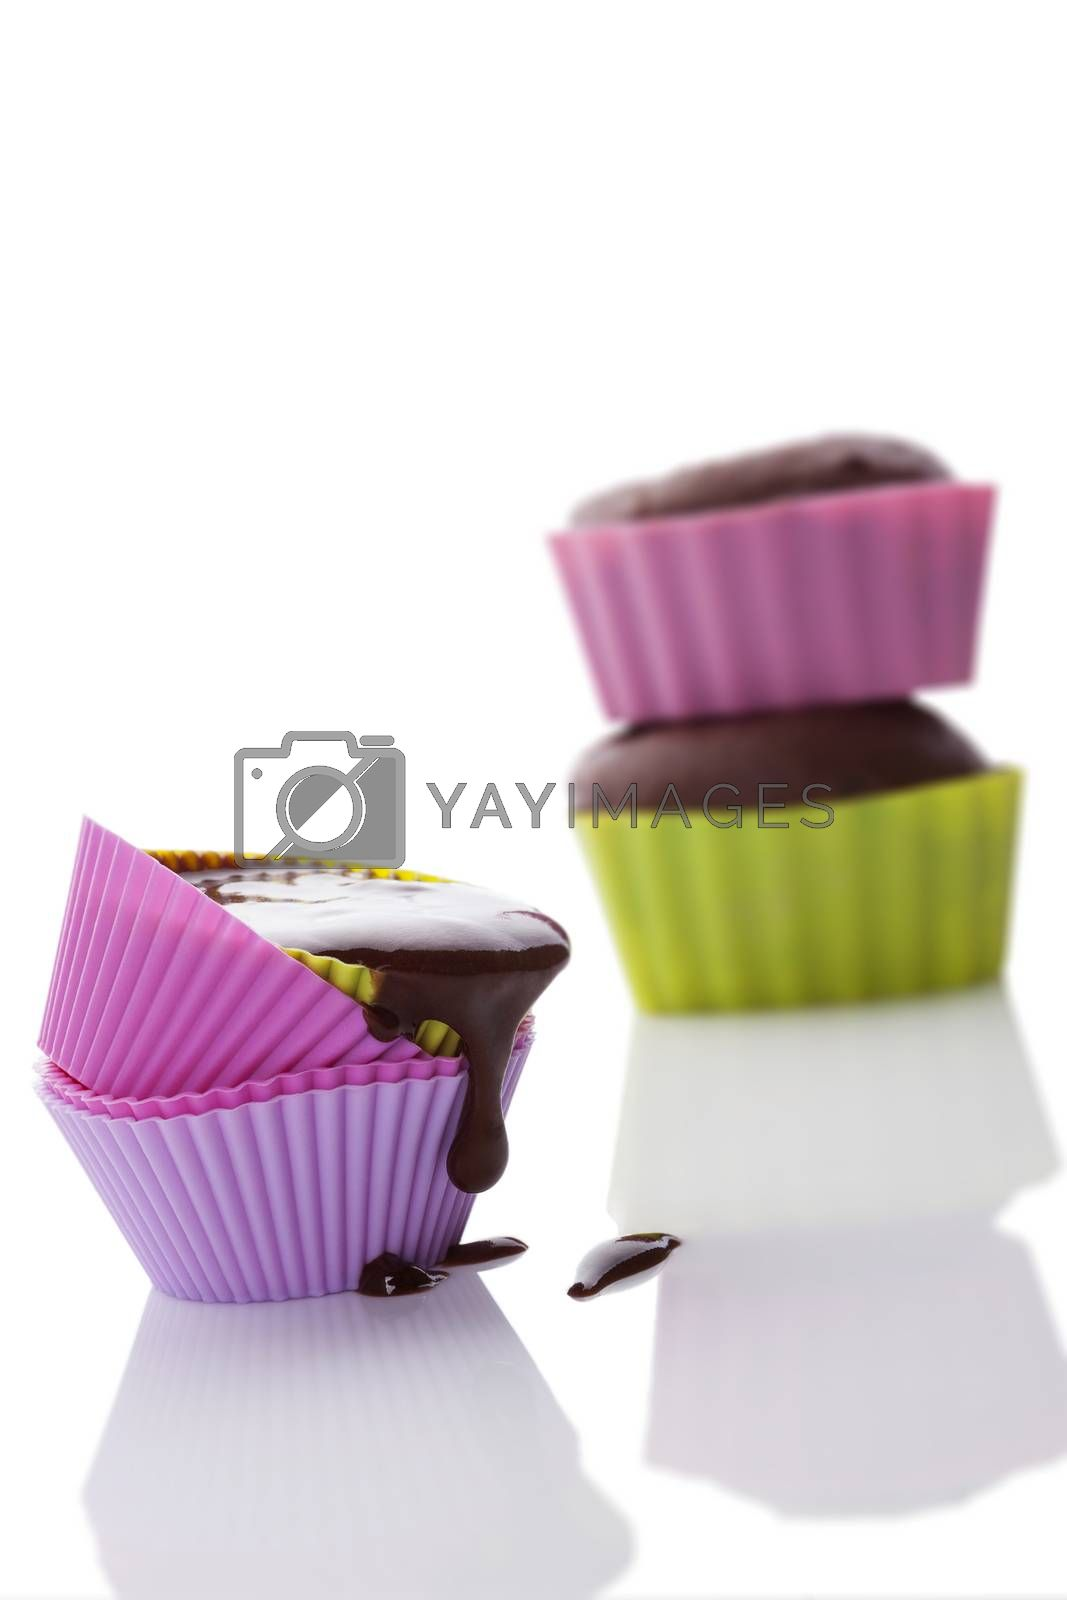 Making cupcakes. Cupcake mixture in neon colored silicone baking forms isolated on white background.